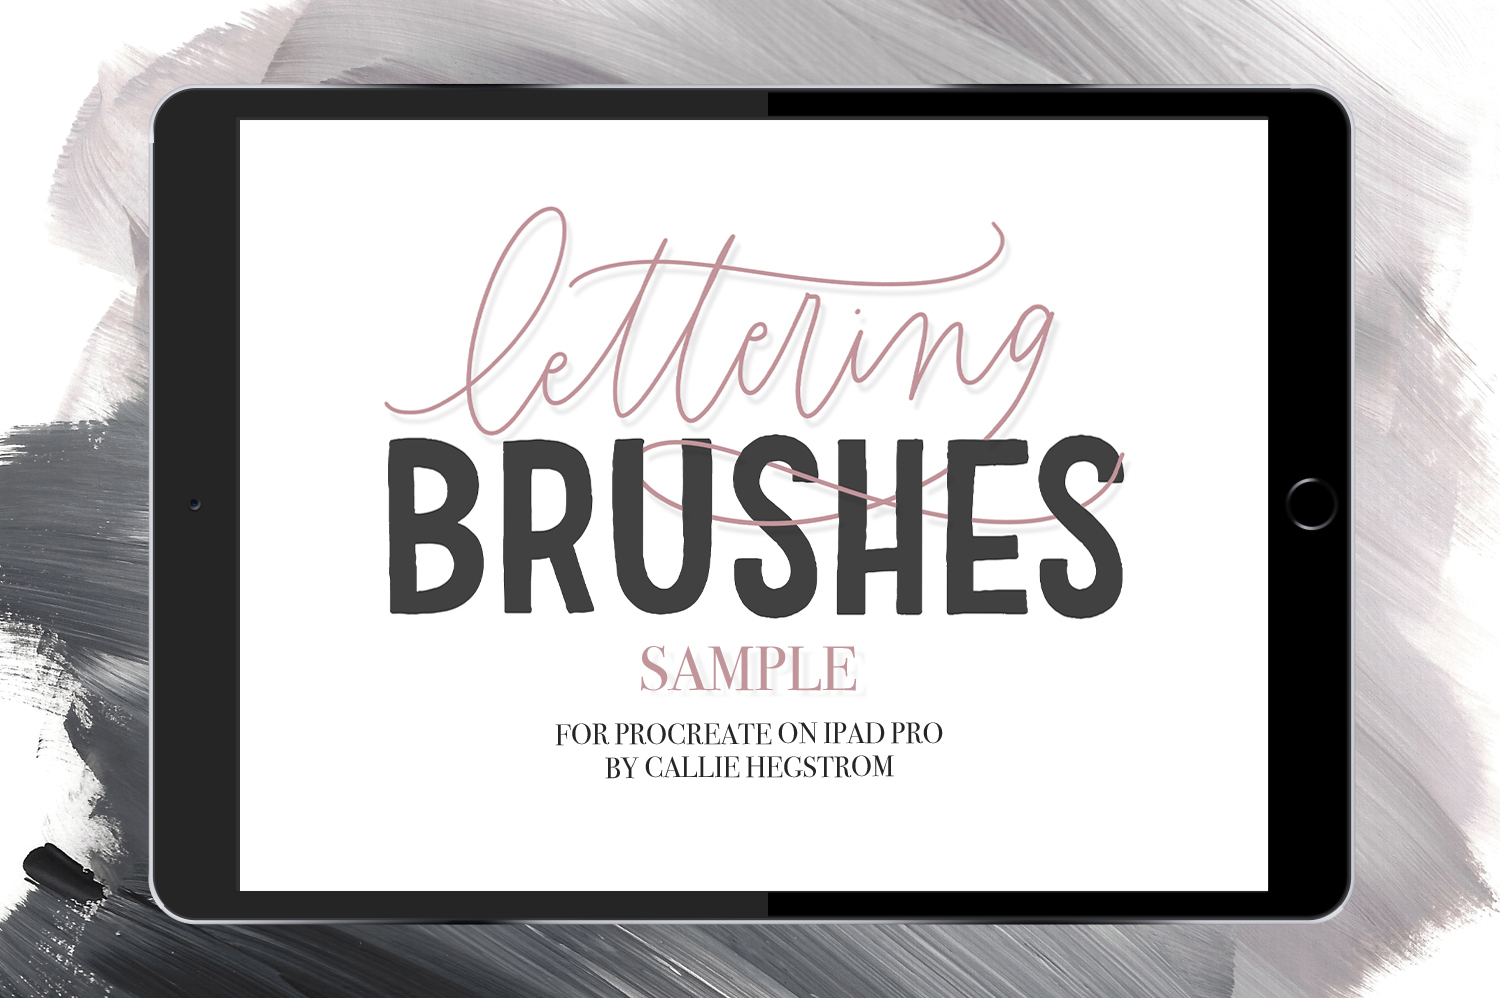 Free: 12 iPad Brushes For Procreate Samplee